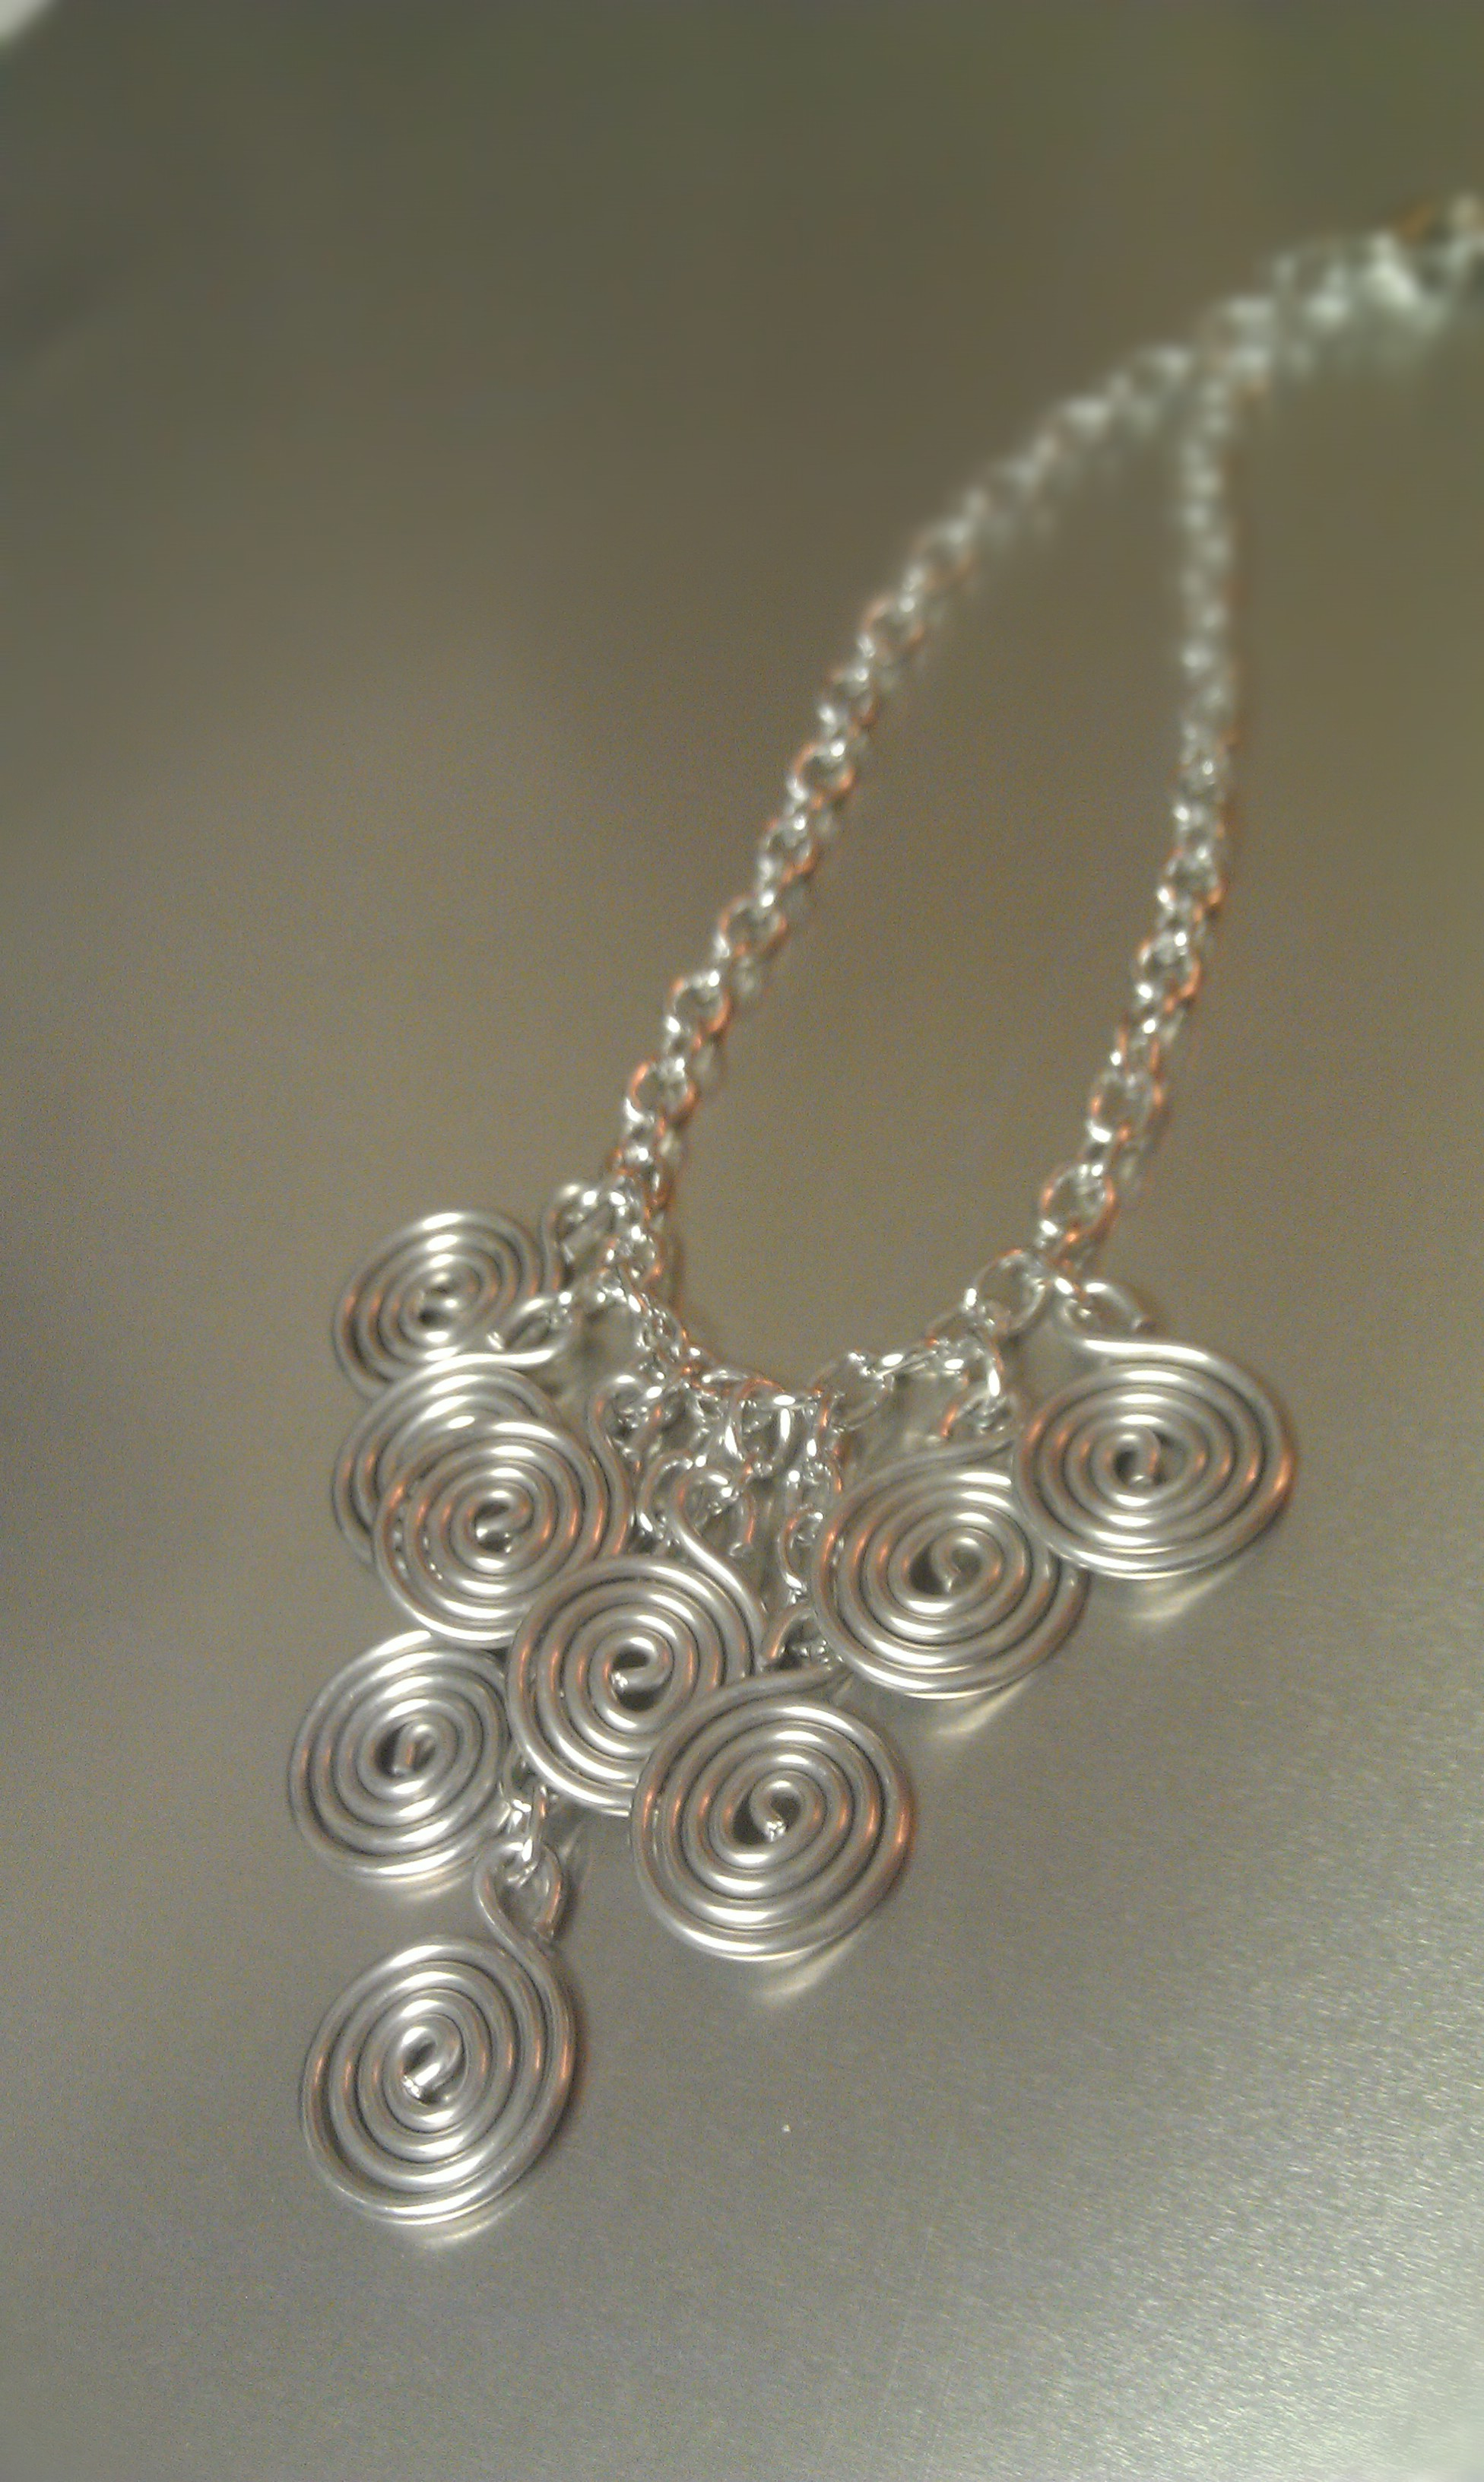 WIRE WORKS AND KEARA DESIGNS